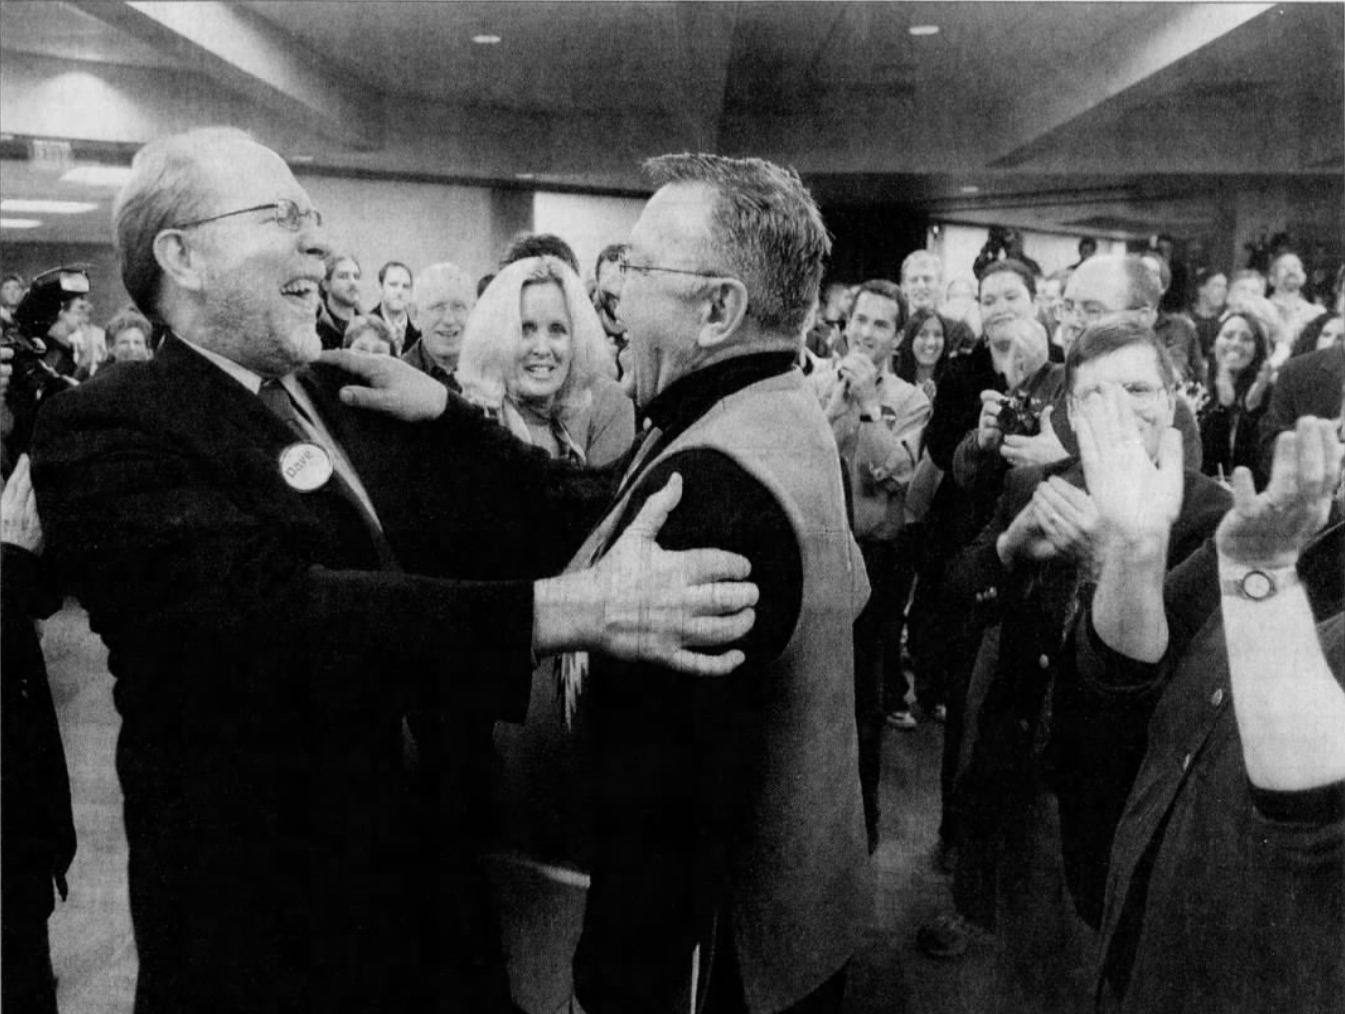 Congressman-elect Dave Loebsack greets supporters Tuesday night, Nov. 7, 2006, at hotelVetro in Iowa City. Loebsack defeated 30-year incumbent Jim Leach.